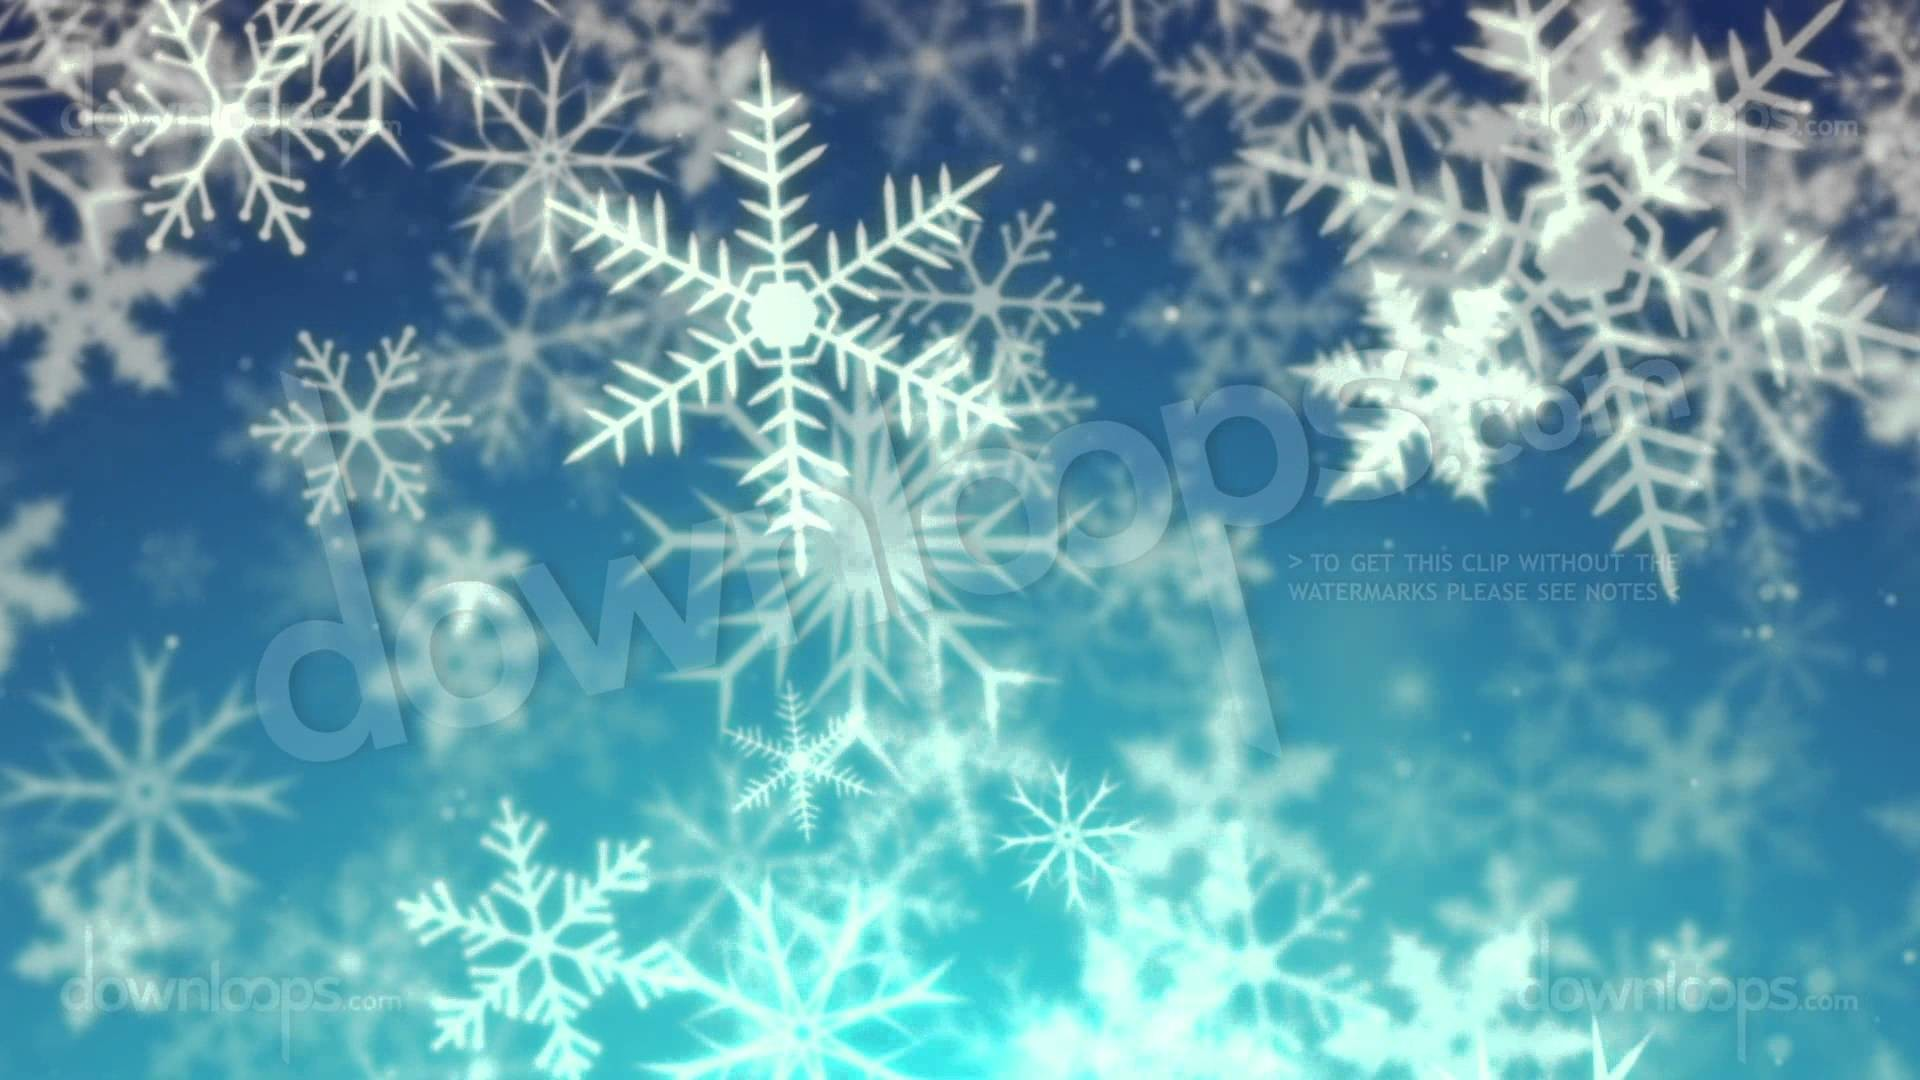 Live Moving Fall Wallpaper For Pc Animated Snow Falling Wallpaper 60 Images